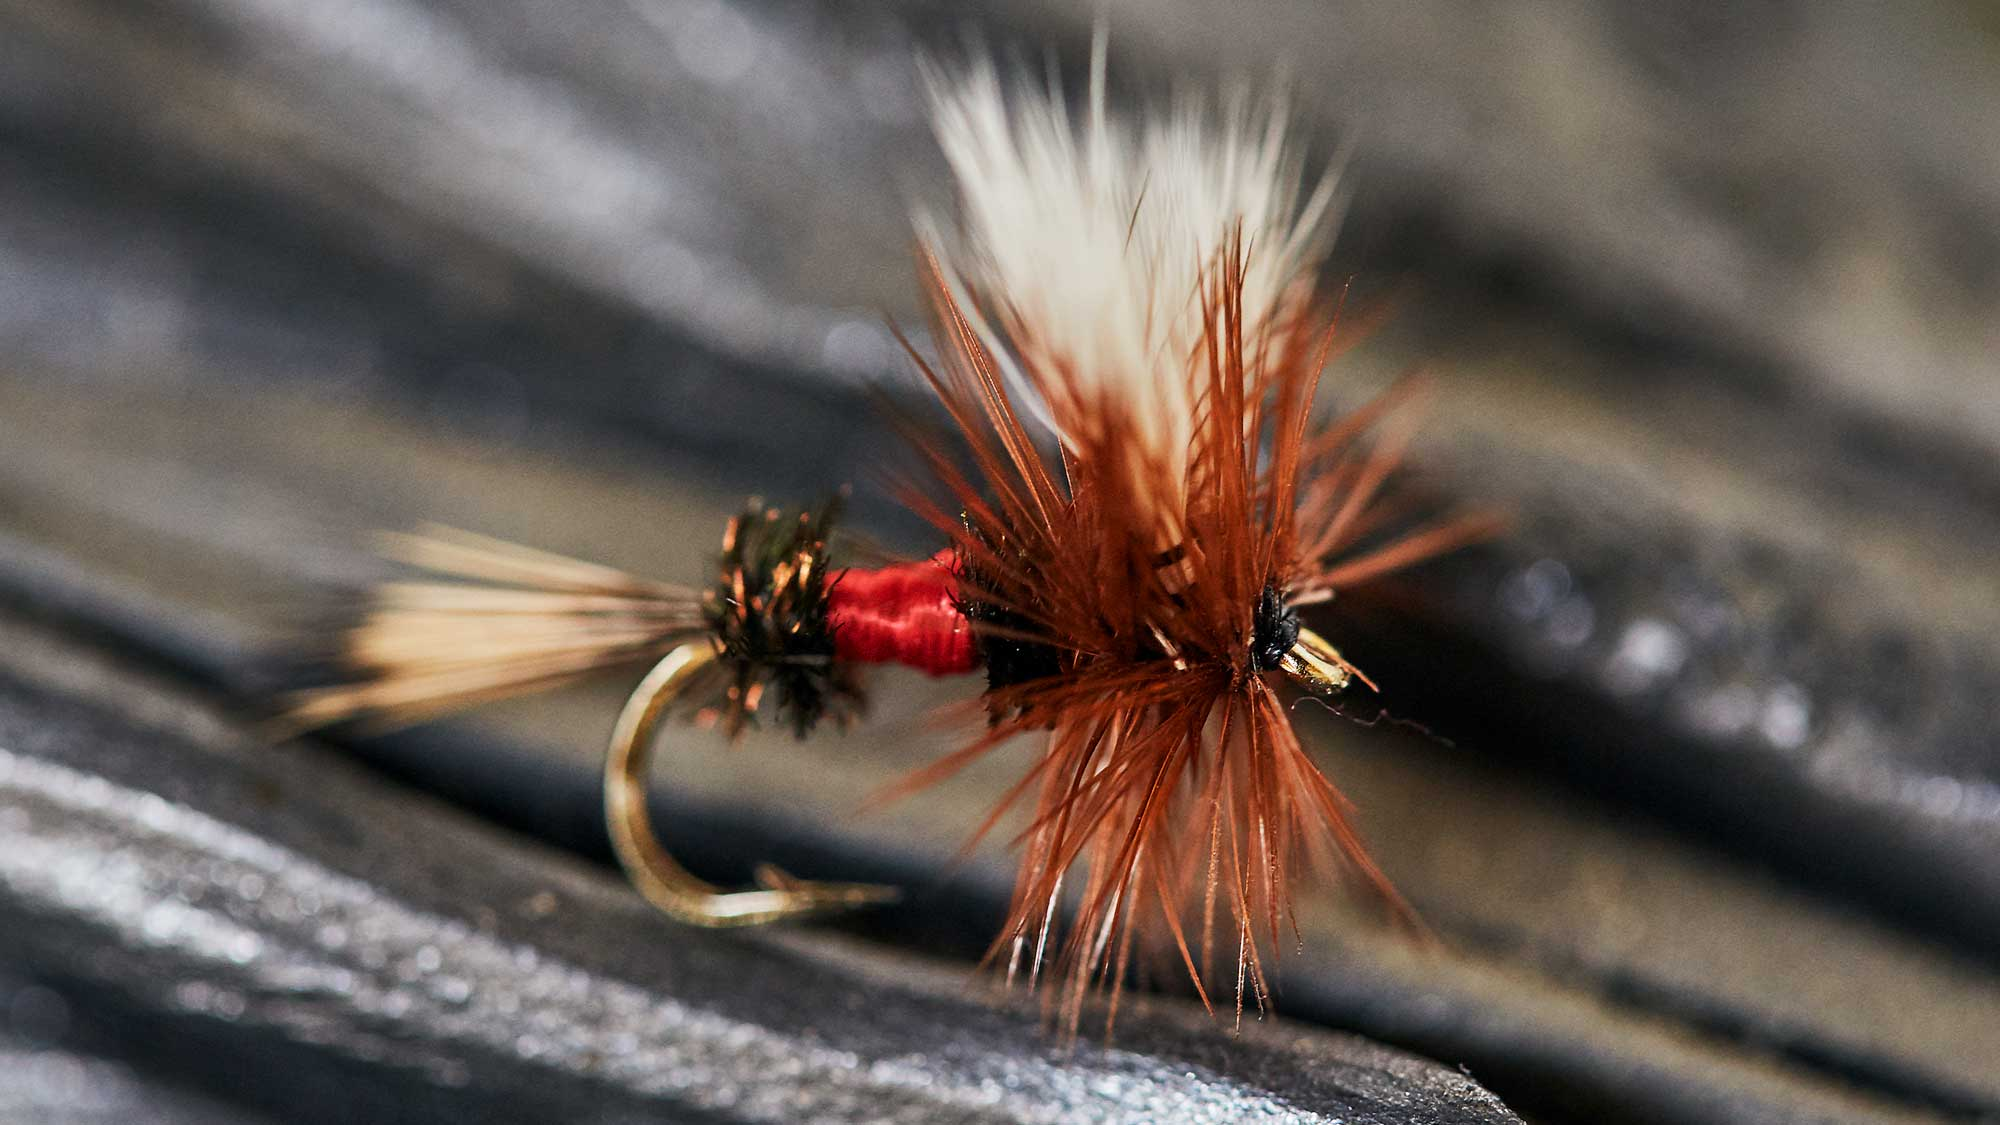 Does Fly Fishing Use Hooks?